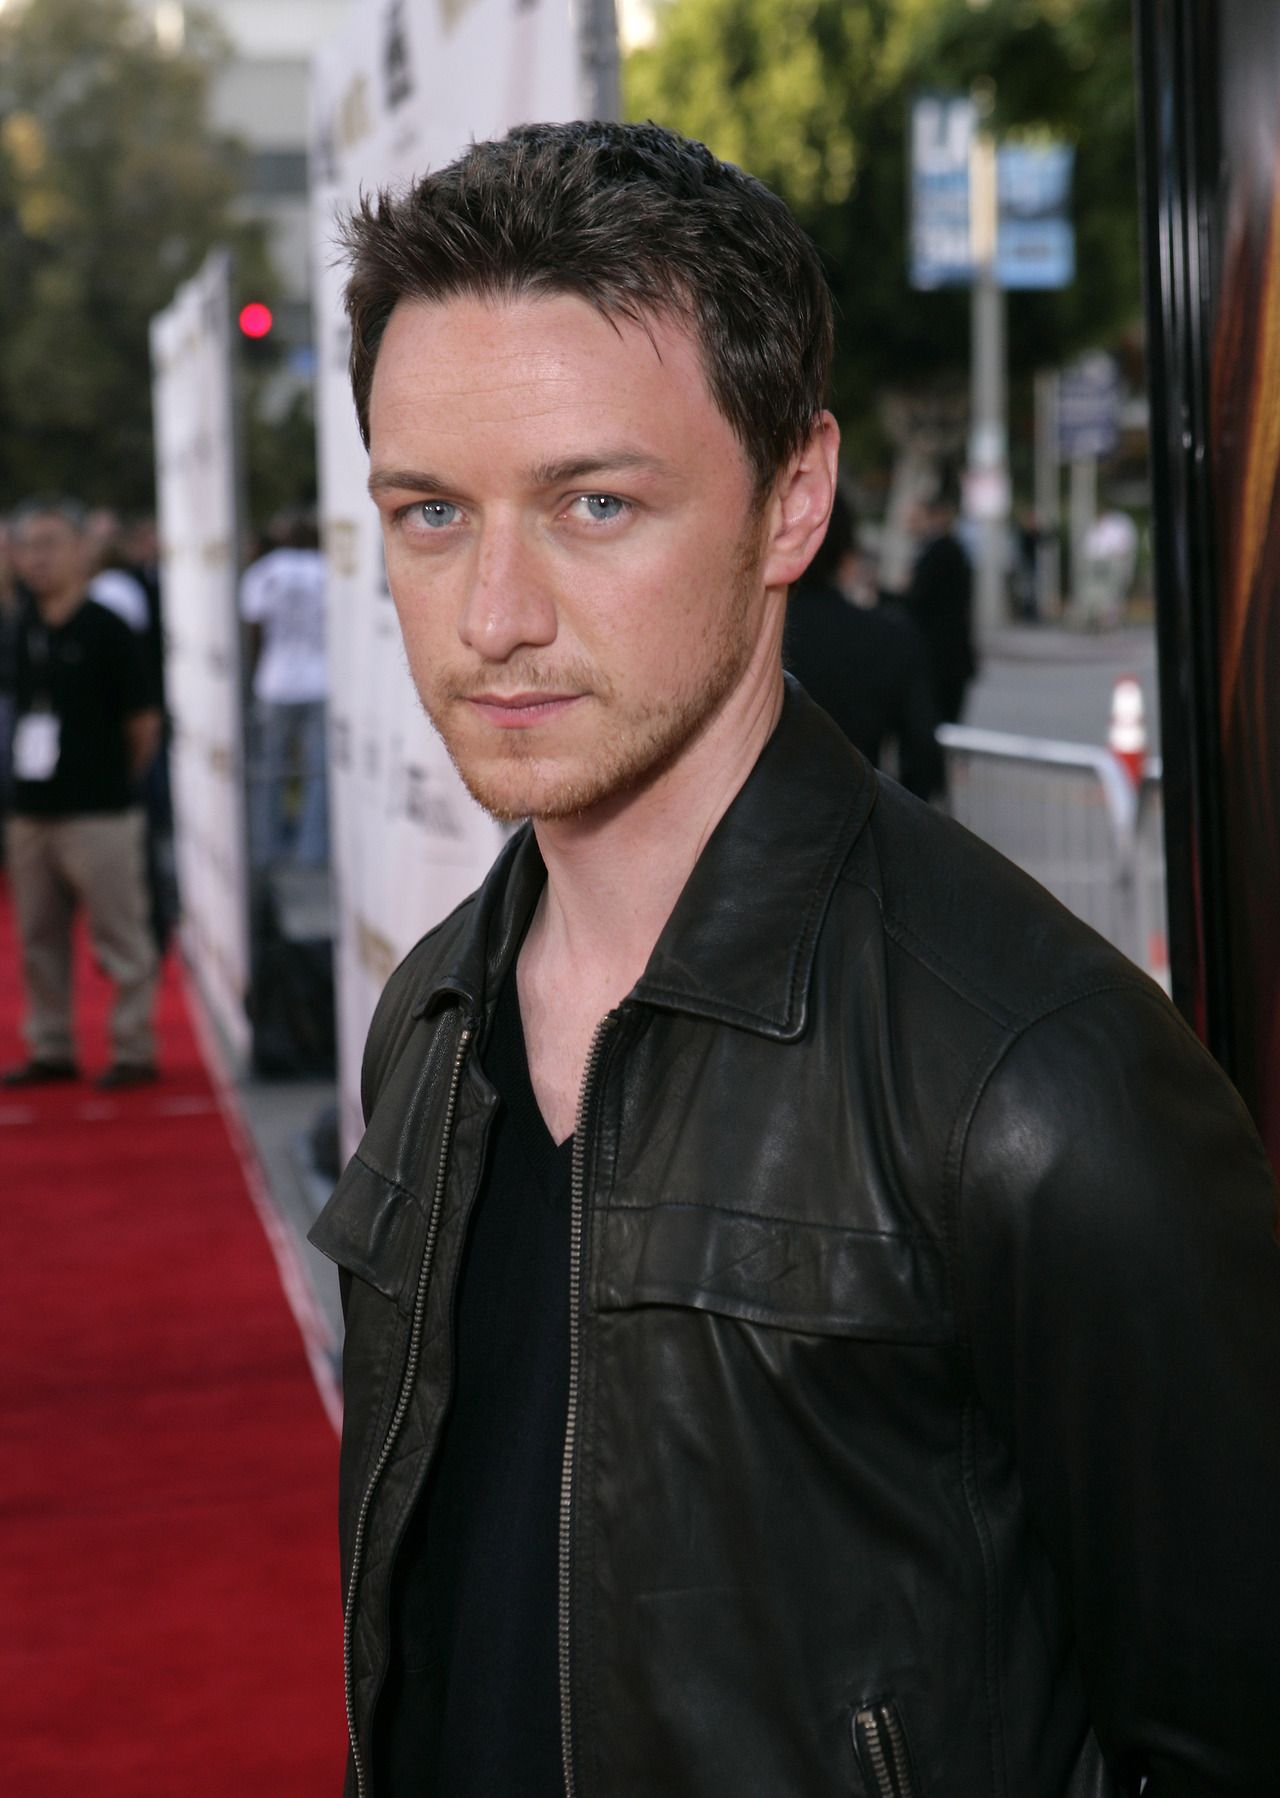 Jamesy boy hairstyle james mcavoy  james mcavoy  pinterest  james mcavoy and eye candy